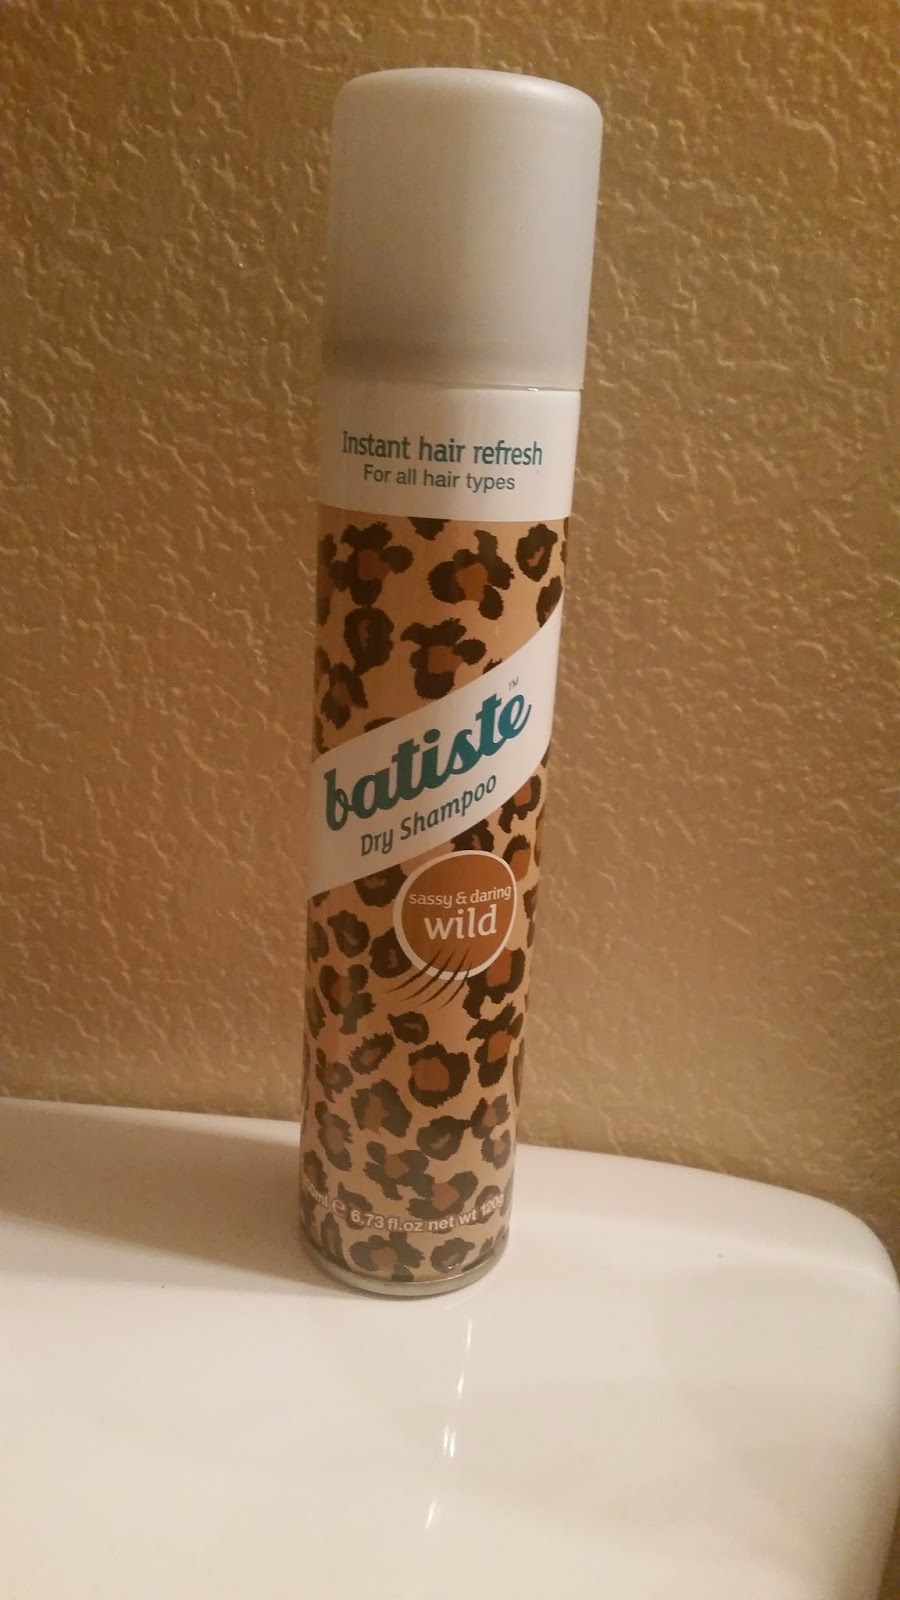 Batiste Dry Shampoo Review Kick Back With Cate Wild Is A Scented That Absorbs Dirt Oil And Product Build Up In Quick Easy Manner Most Shampoos Work For Me